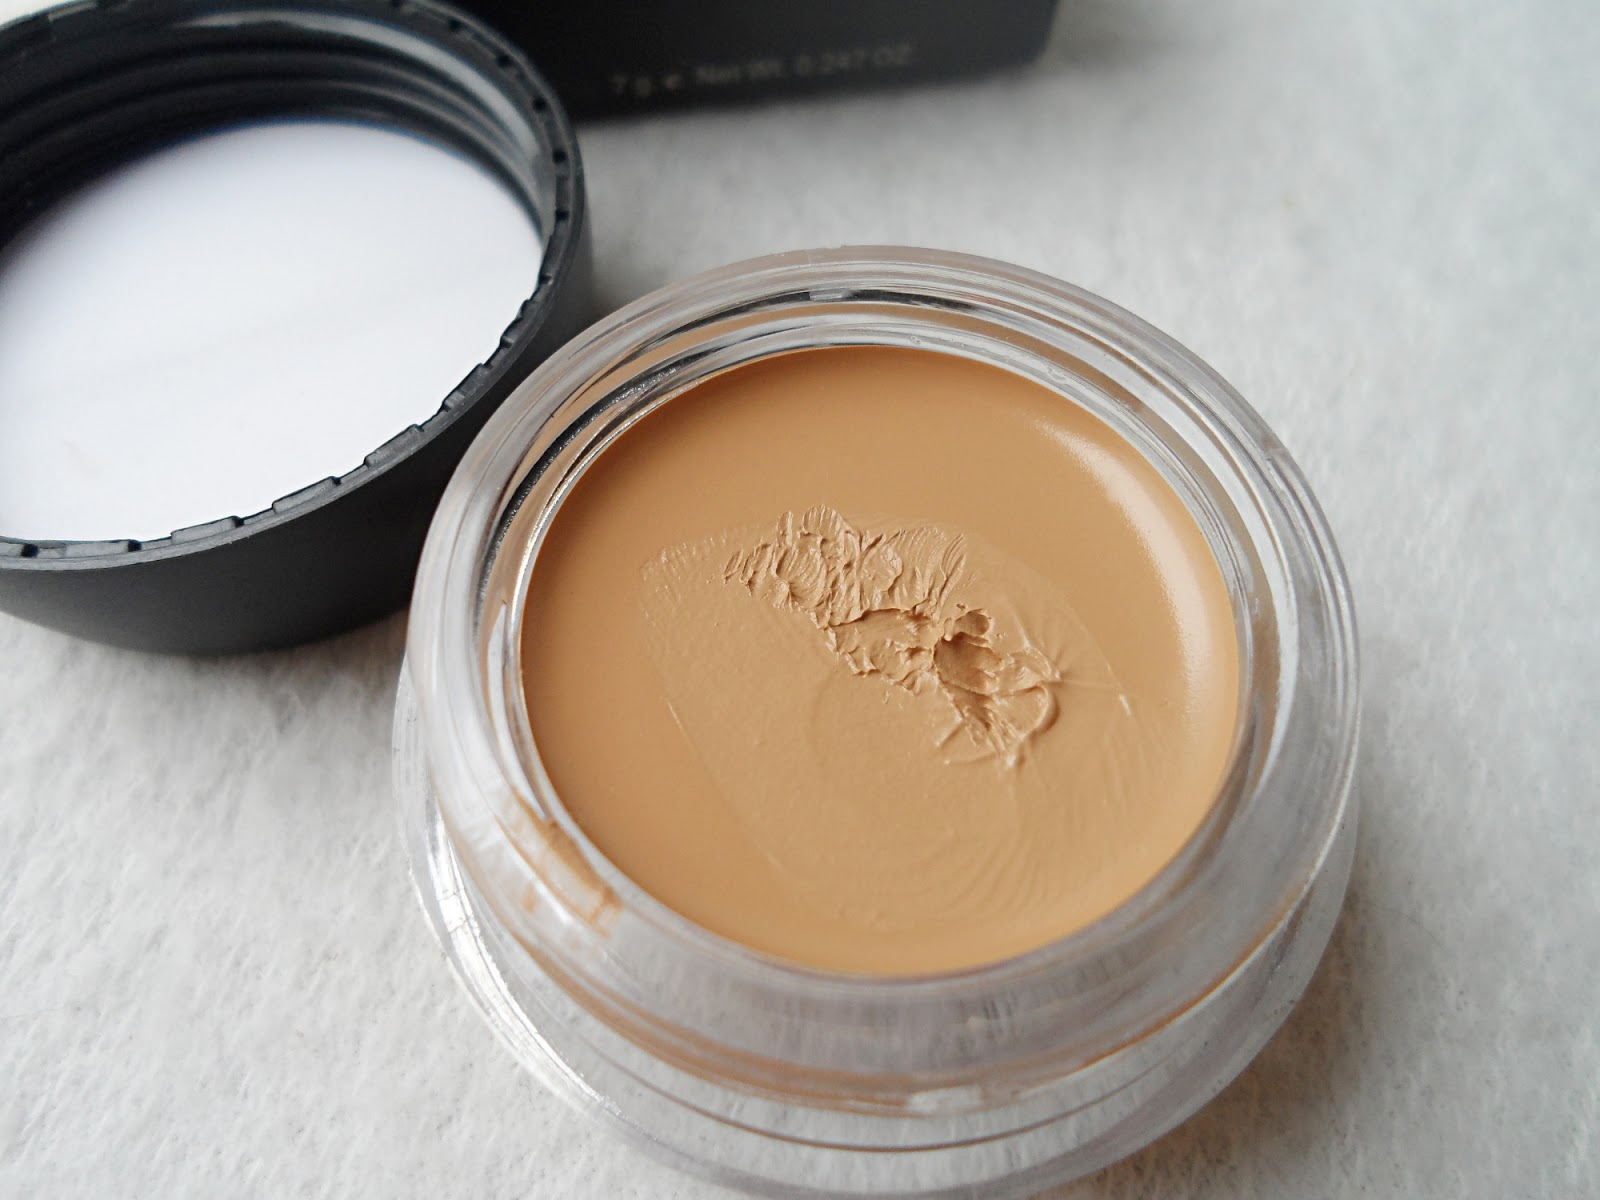 born pretty store foundation cream concealer review pictures swatches 003